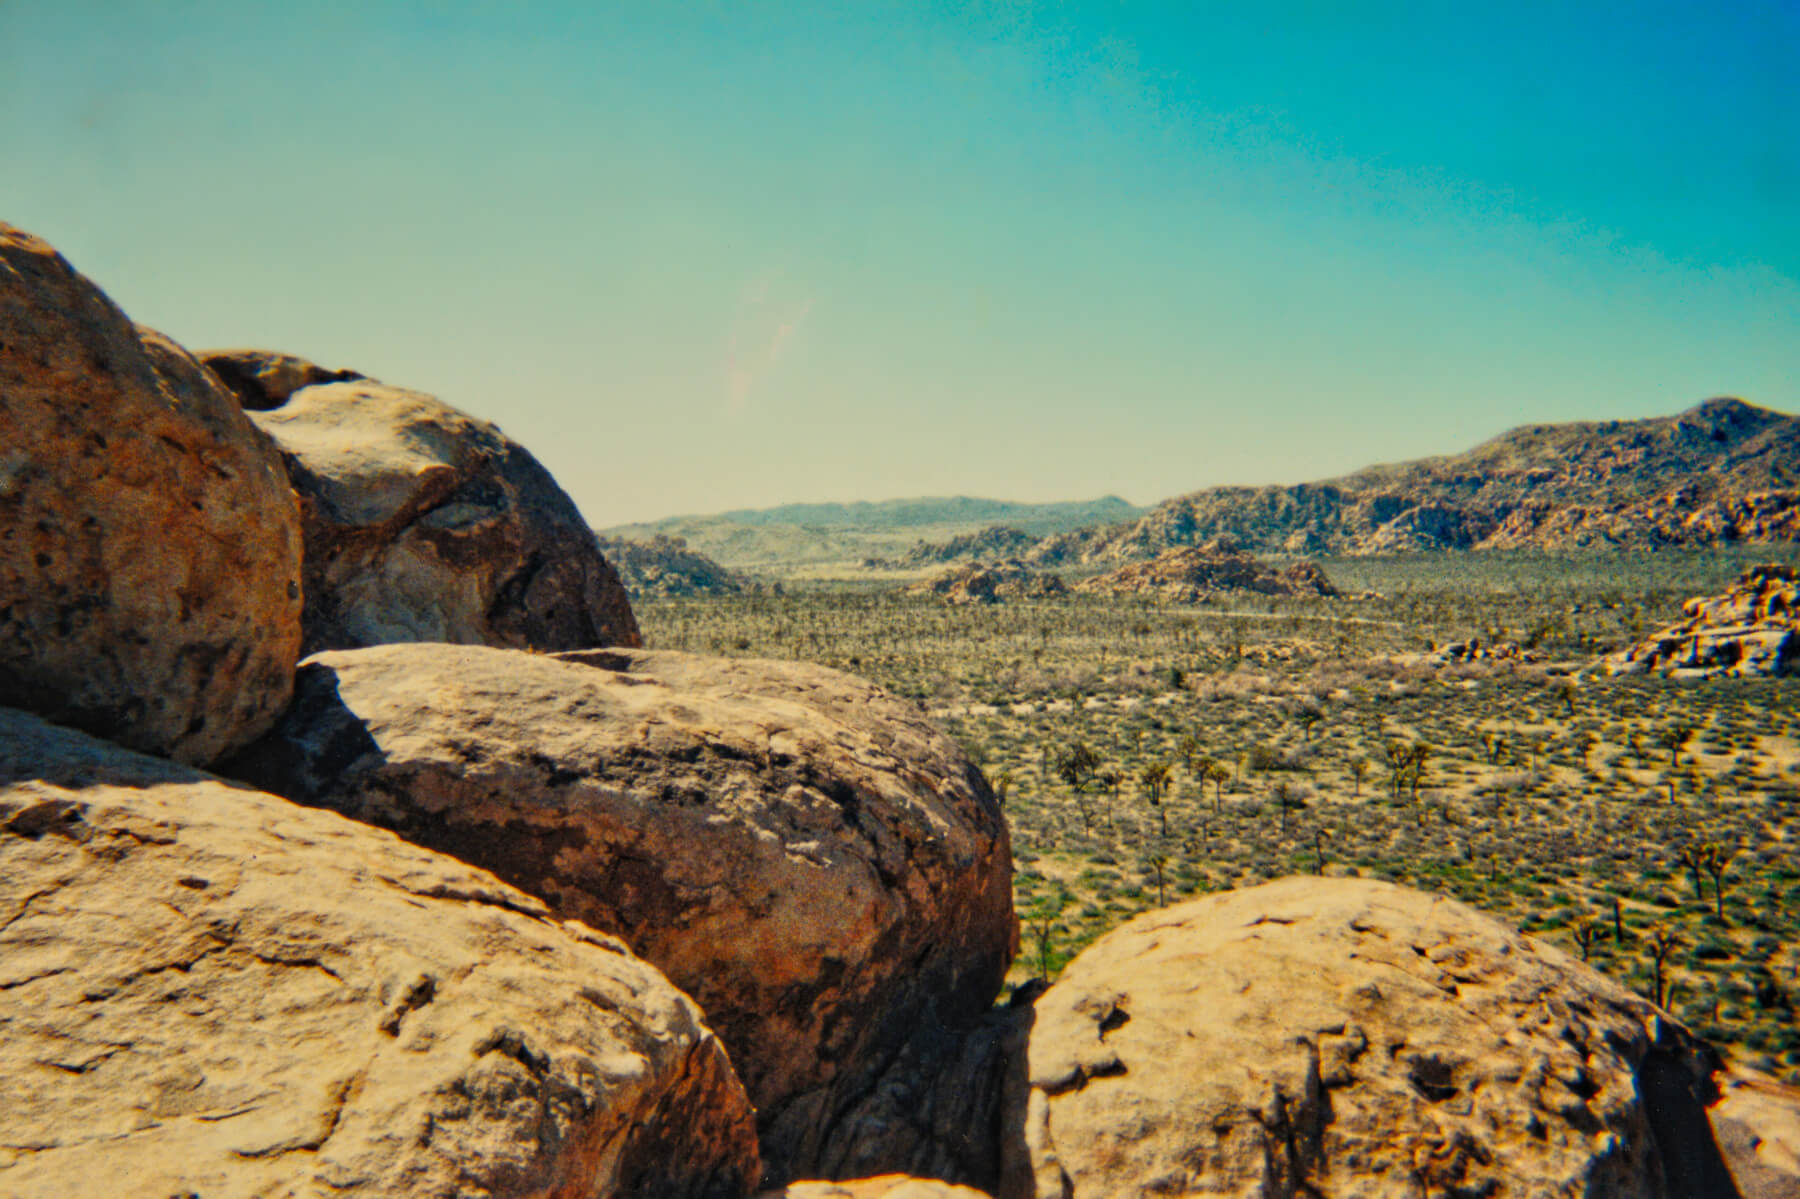 Joshua Tree - This is the view from the top of the rock stack. Unforgetable.